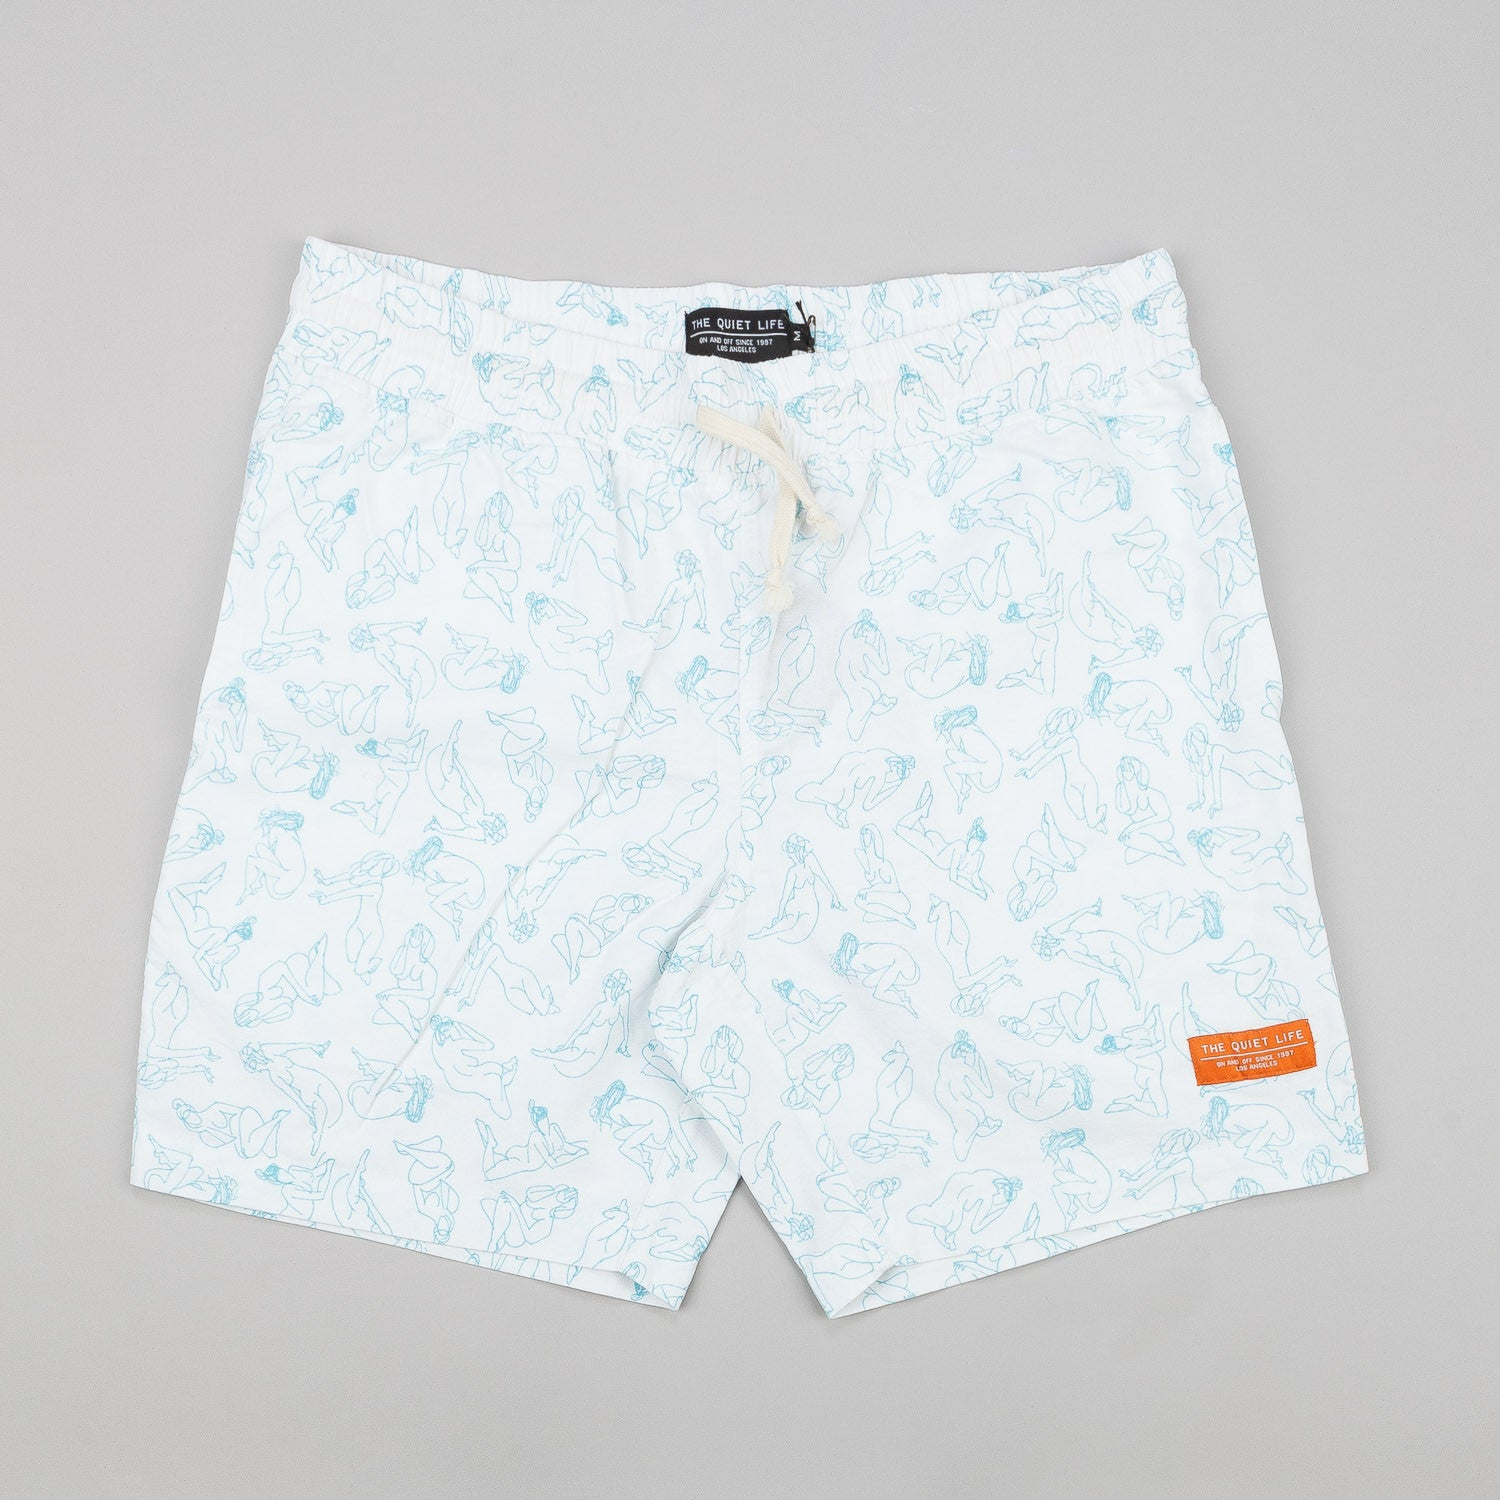 The Quiet Life Girls Beach Short